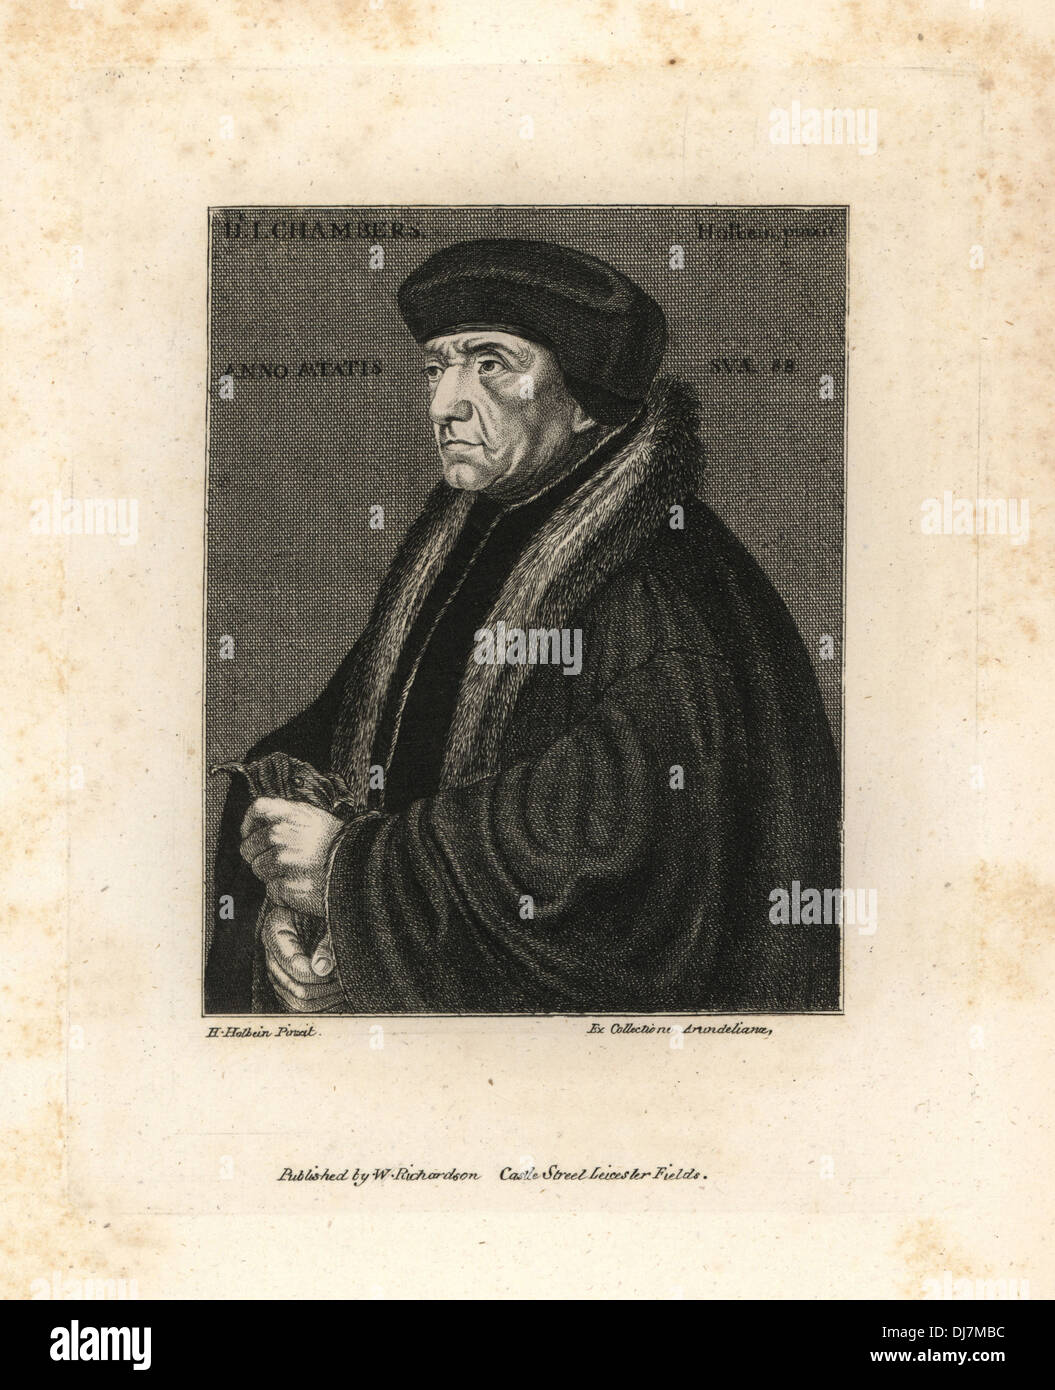 Dr. John Chambers, physician to King Henry VIII. - Stock Image